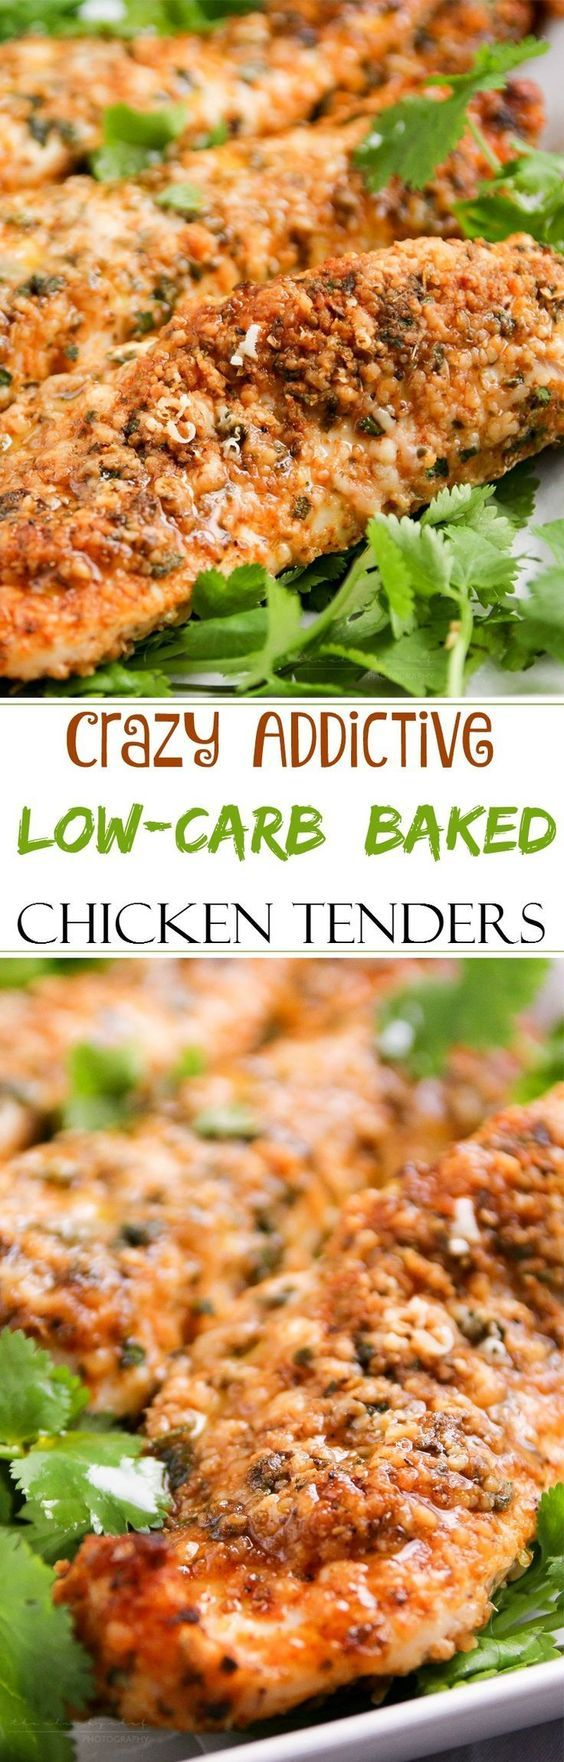 Low Carb Baked Chicken Tenders  These baked chicken tenders are coated in a…